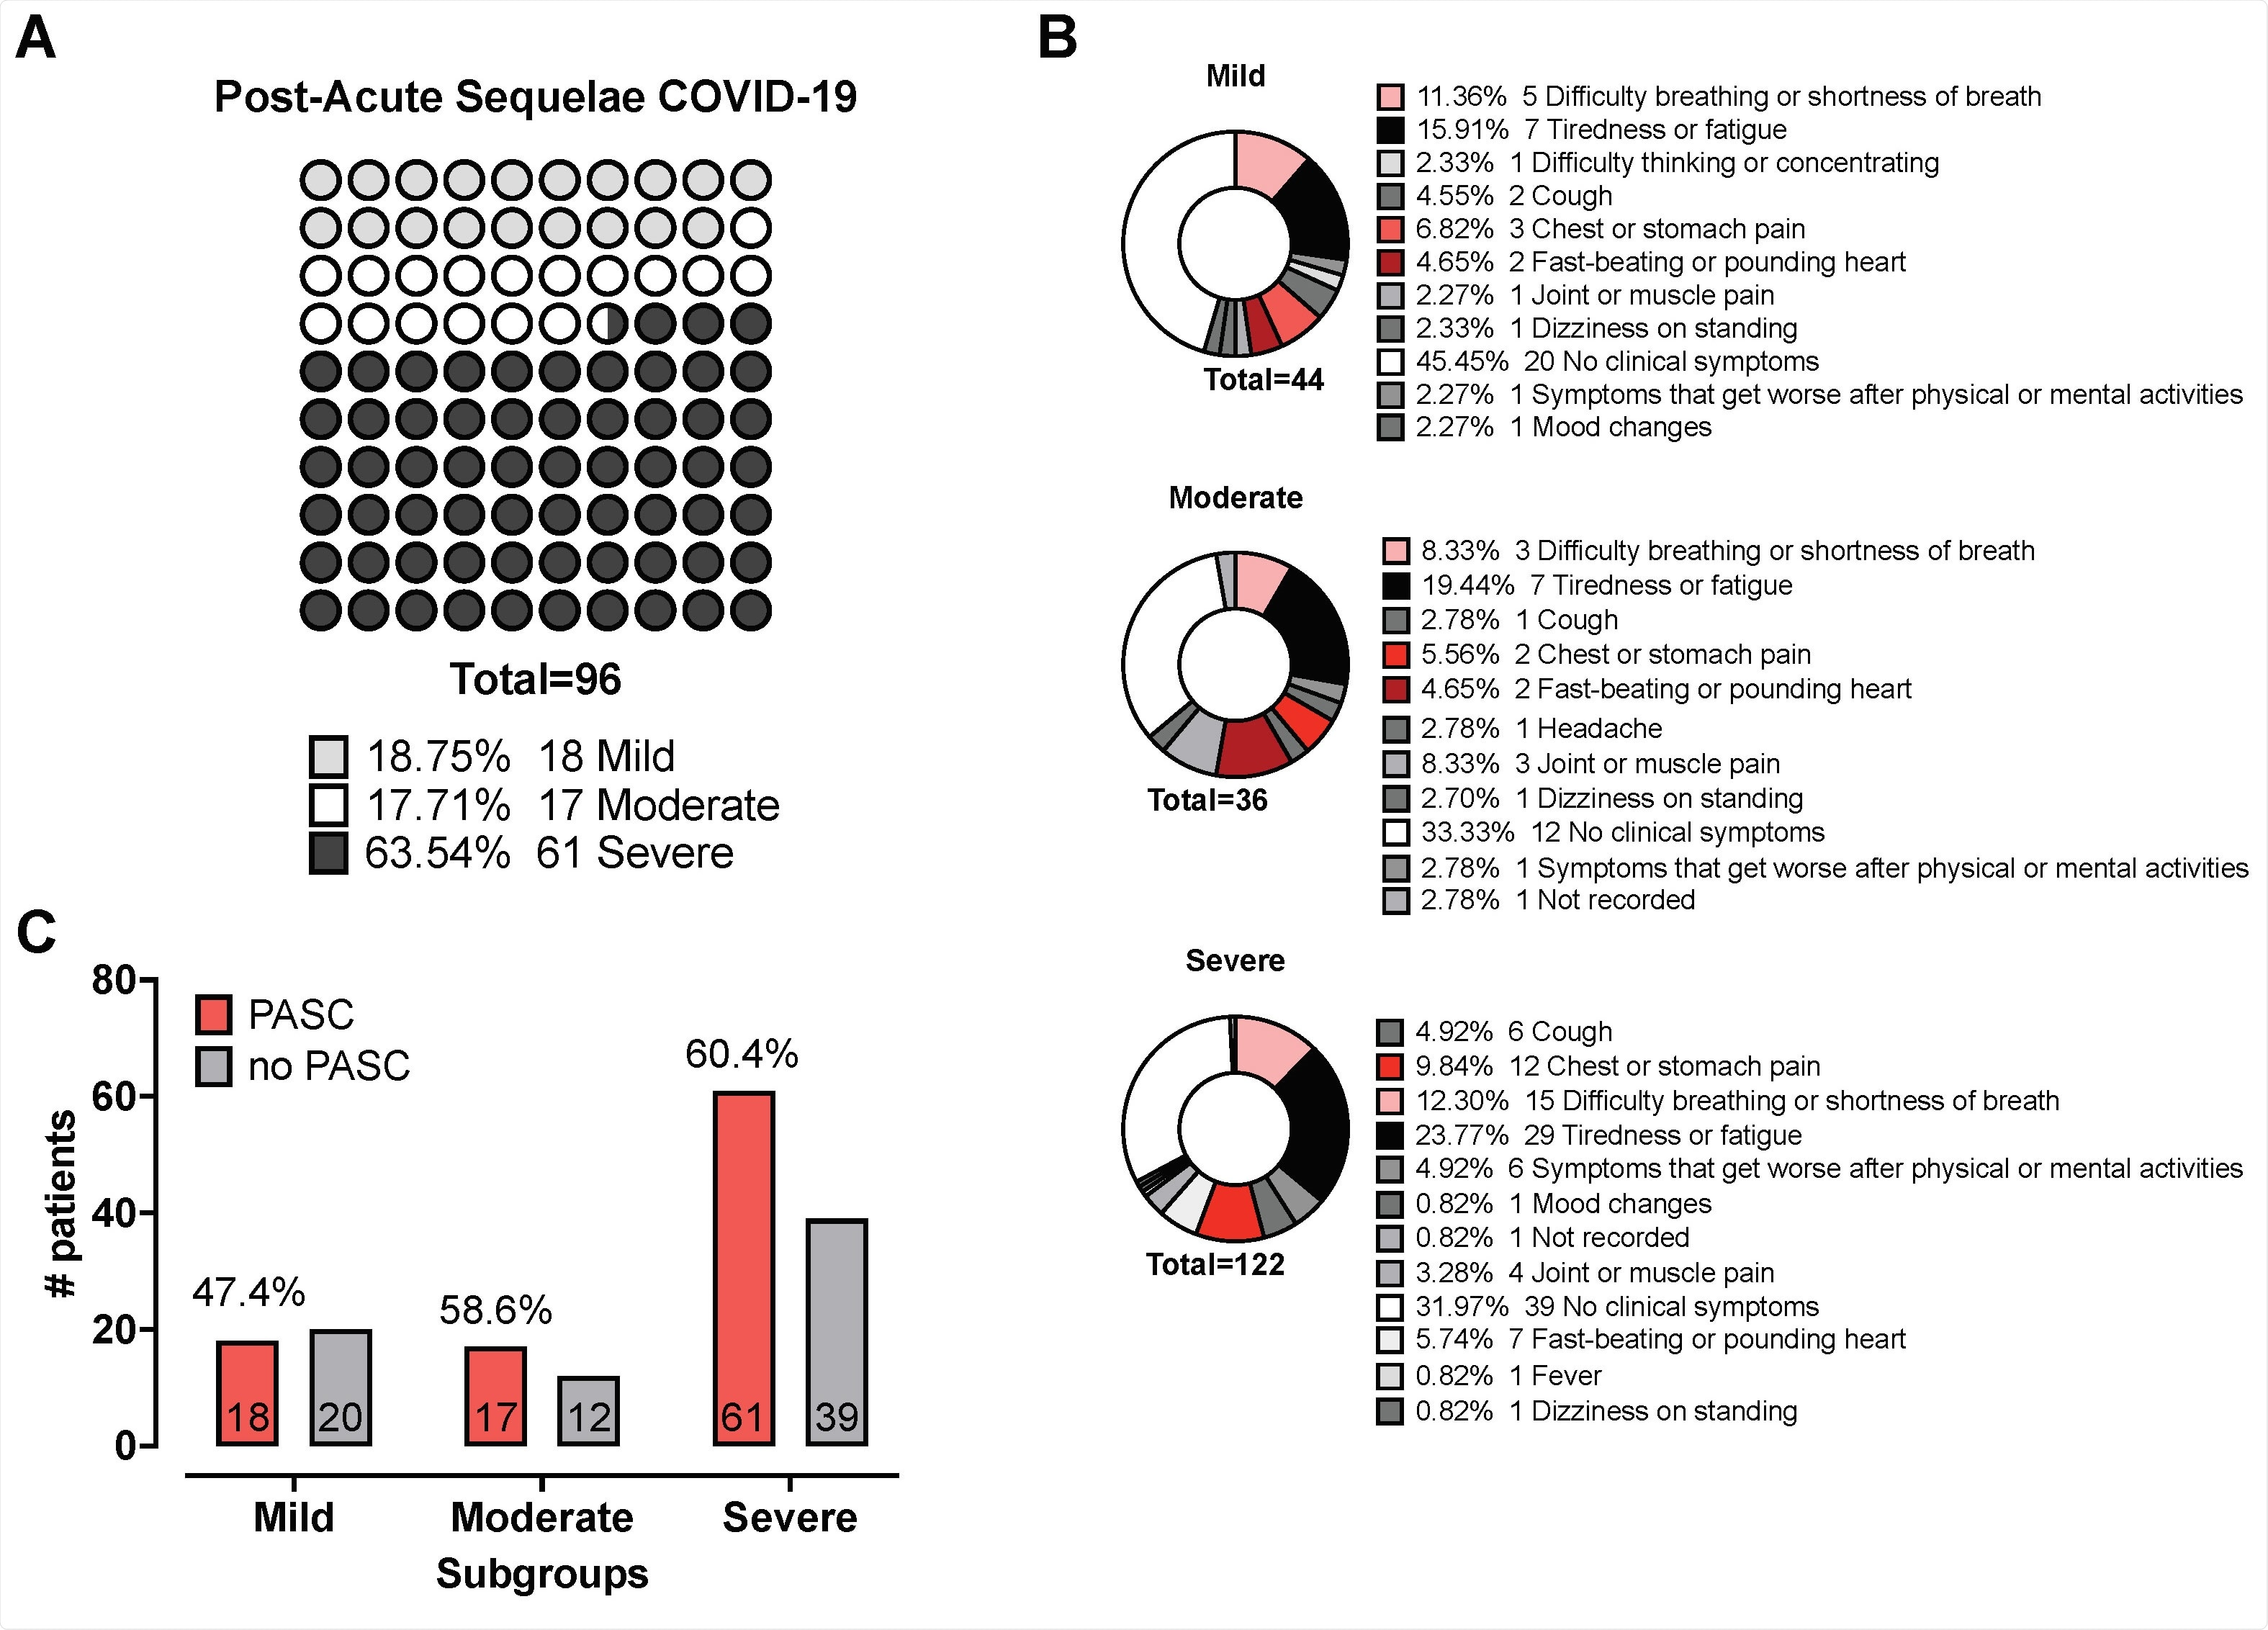 Post-Acute Sequelae of COVID-19 (PASC) Panel A shows pie charts indicating the distribution of reported PASC among the mild, moderate, and severe subgroups. (%) Numbers correspond to individuals who reported said PASC; colours indicate respective PASC. Panel B depicts a dot plot graph visualising the distribution of % Number of individuals reporting PASC according to clinical disease severity. Panel C shows the contingency table comparing the proportion of mild- to moderate cases vs severe cases with PASC; numbers in bar represent the patient count, % above the grey and red bar are the reported proportion of no PASC and PASC, respectively